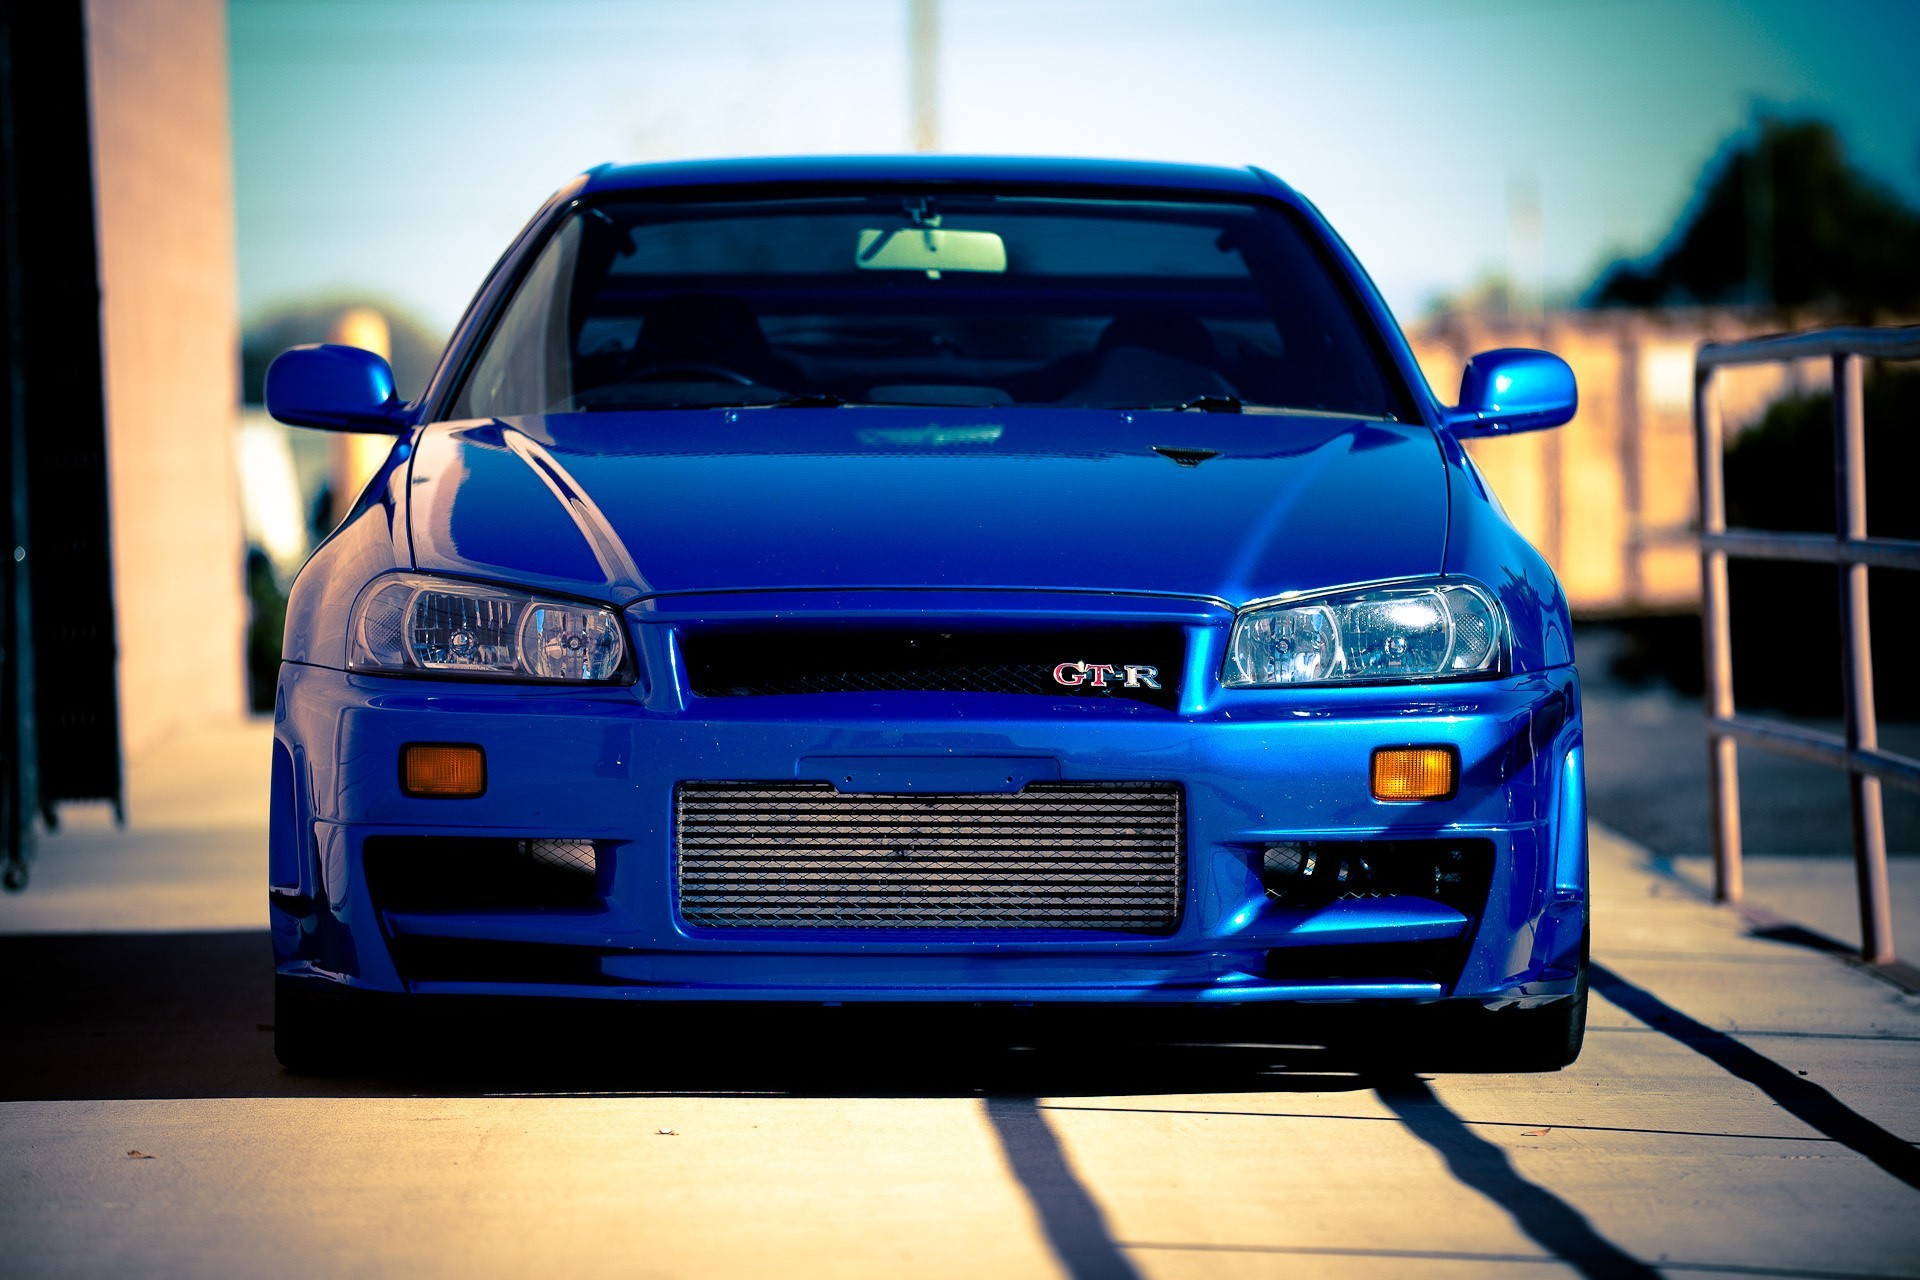 Res: 1920x1280, car, Nissan, Nissan GTR, Blue Cars Wallpapers HD / Desktop and Mobile  Backgrounds